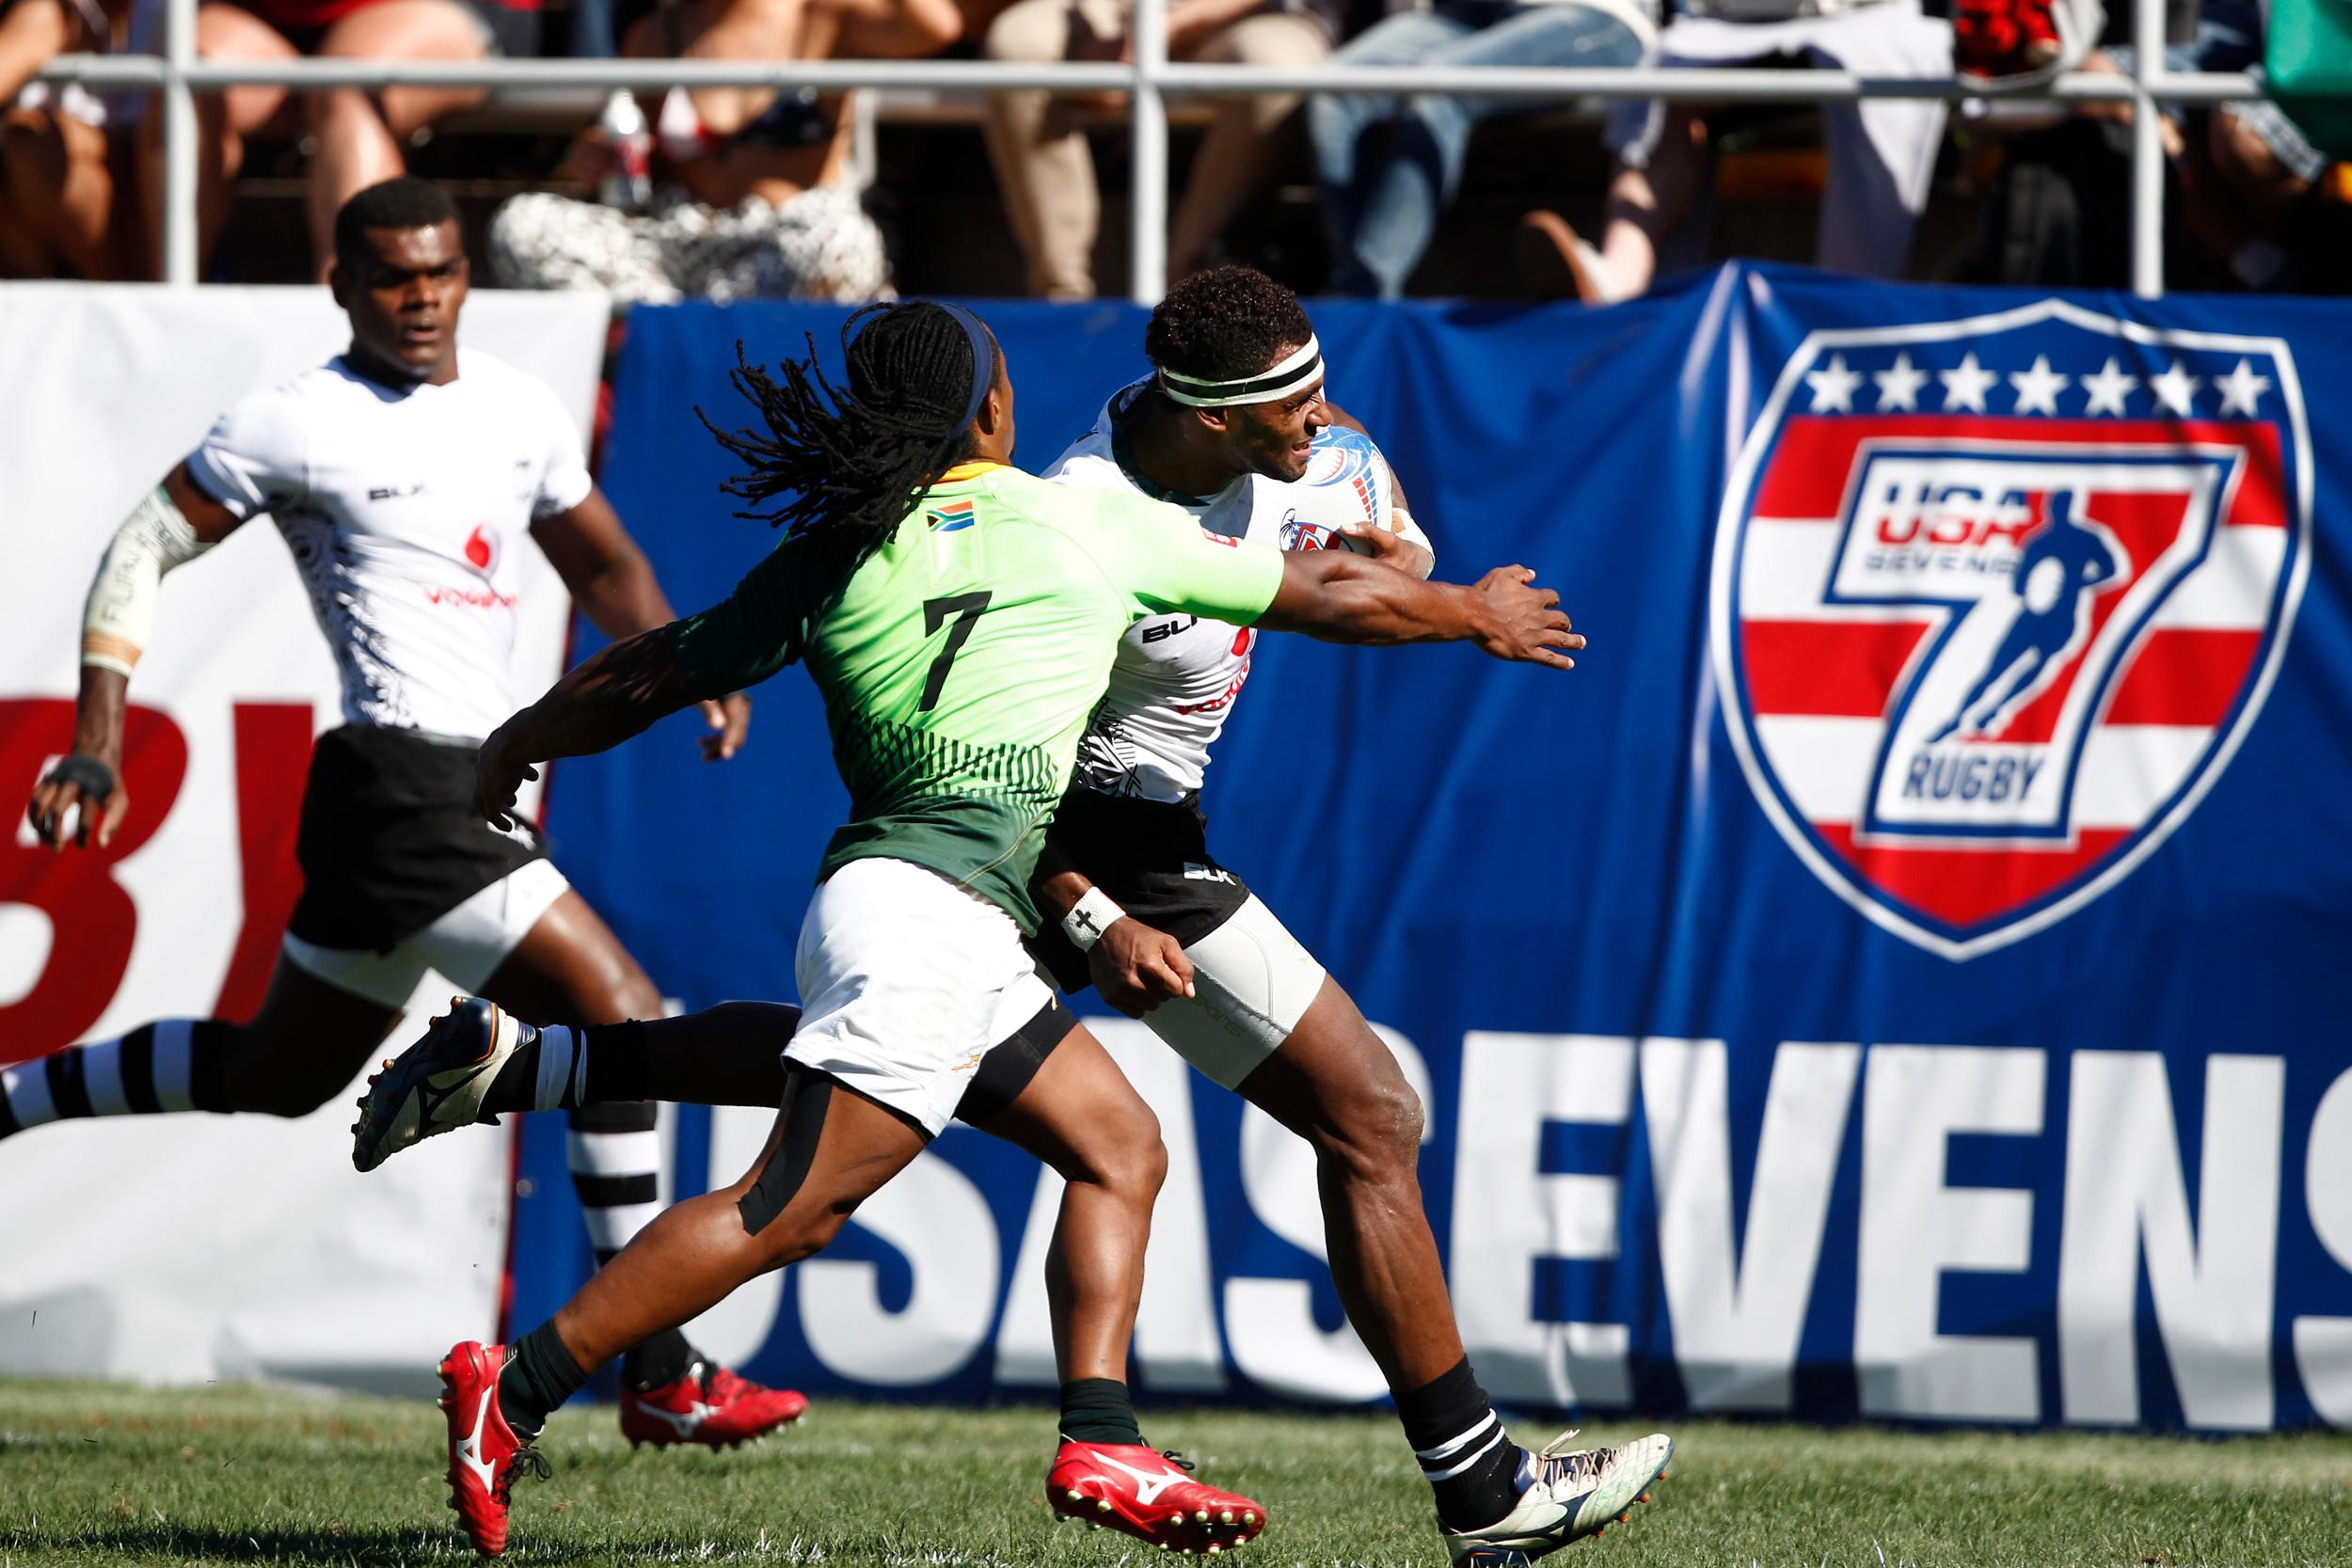 Fiji overcame series leaders South Africa in the semi-finals of the HSBC Sevens World Series in Las Vegas on their way to winning the tournament ©World Rugby